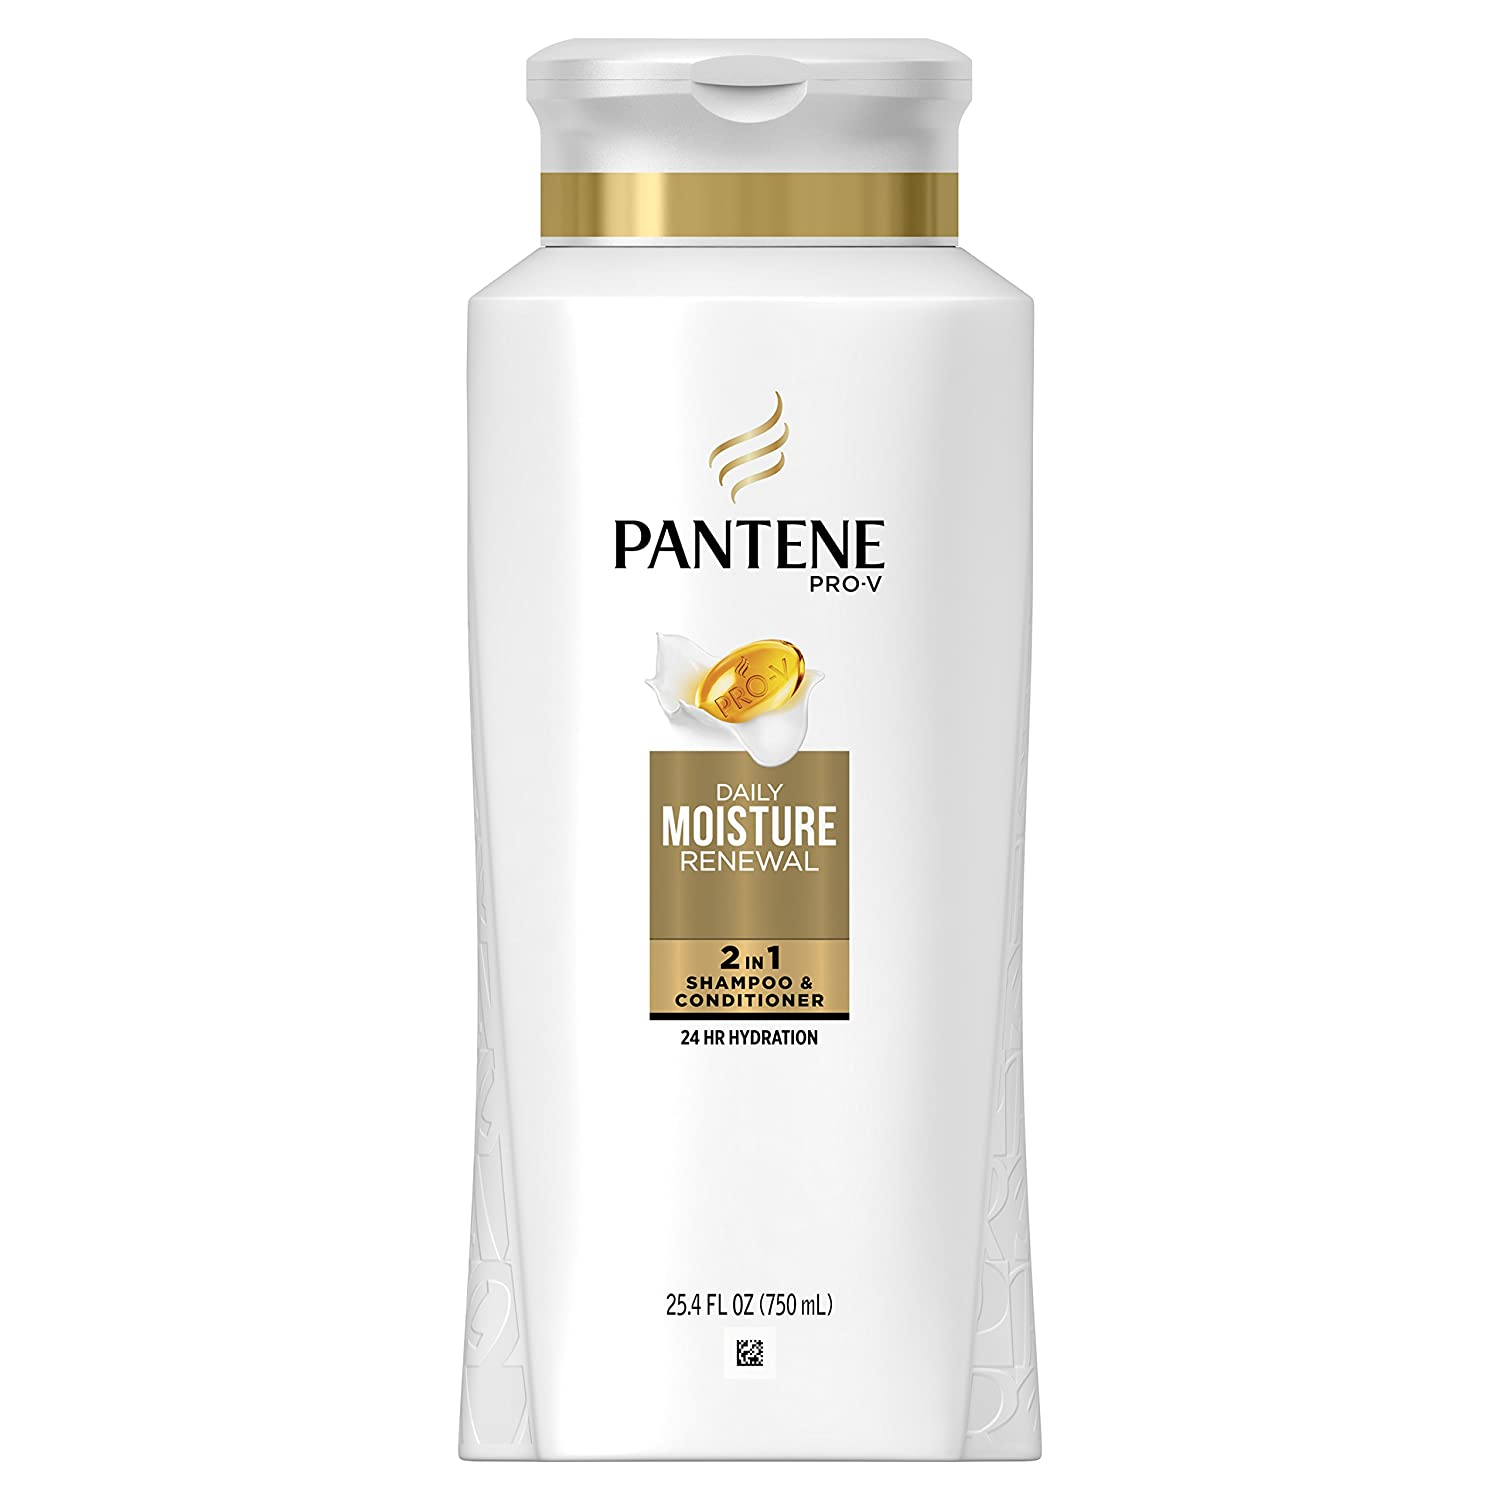 Pantene Pro V Daily Moisture Renewal 2 in 1 Shampoo and Conditioner